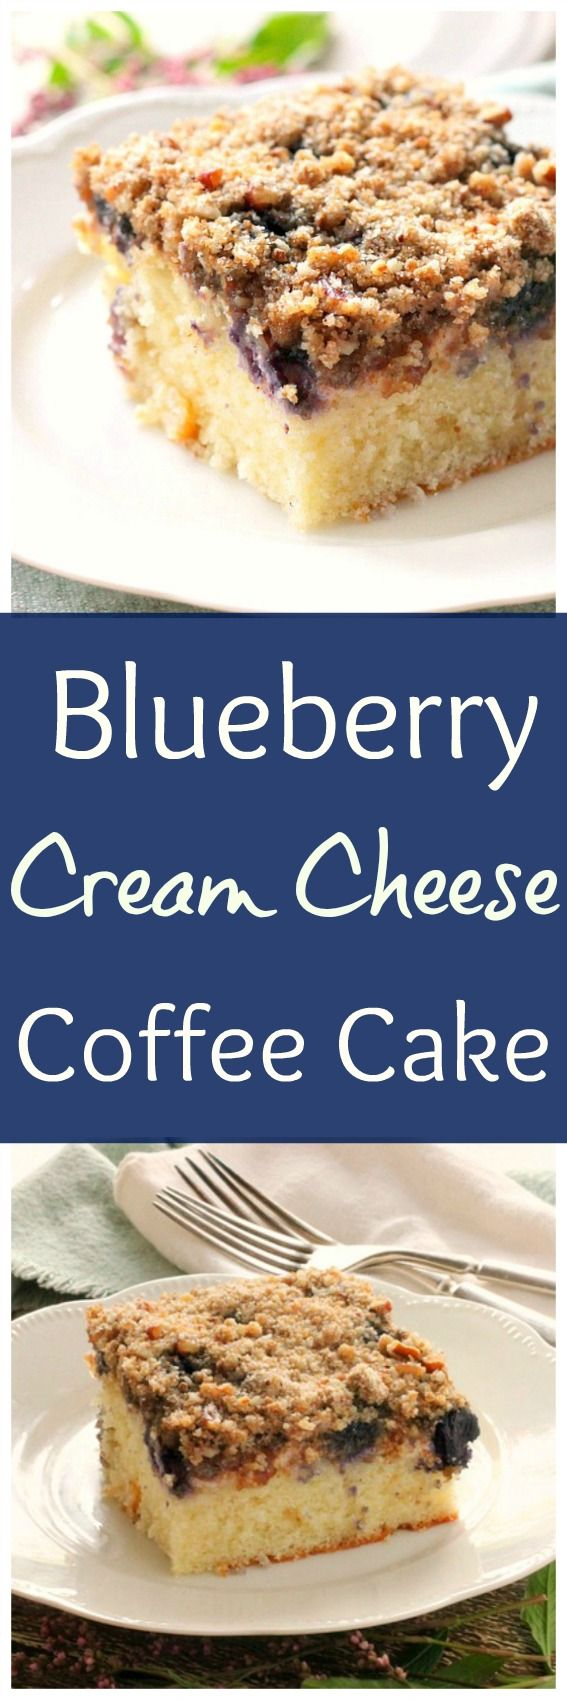 Blueberry Cream Cheese Coffee Cake... The cake layer on the bottom is sprinkled with blueberries and topped with a cream cheese filling and crumb topping.